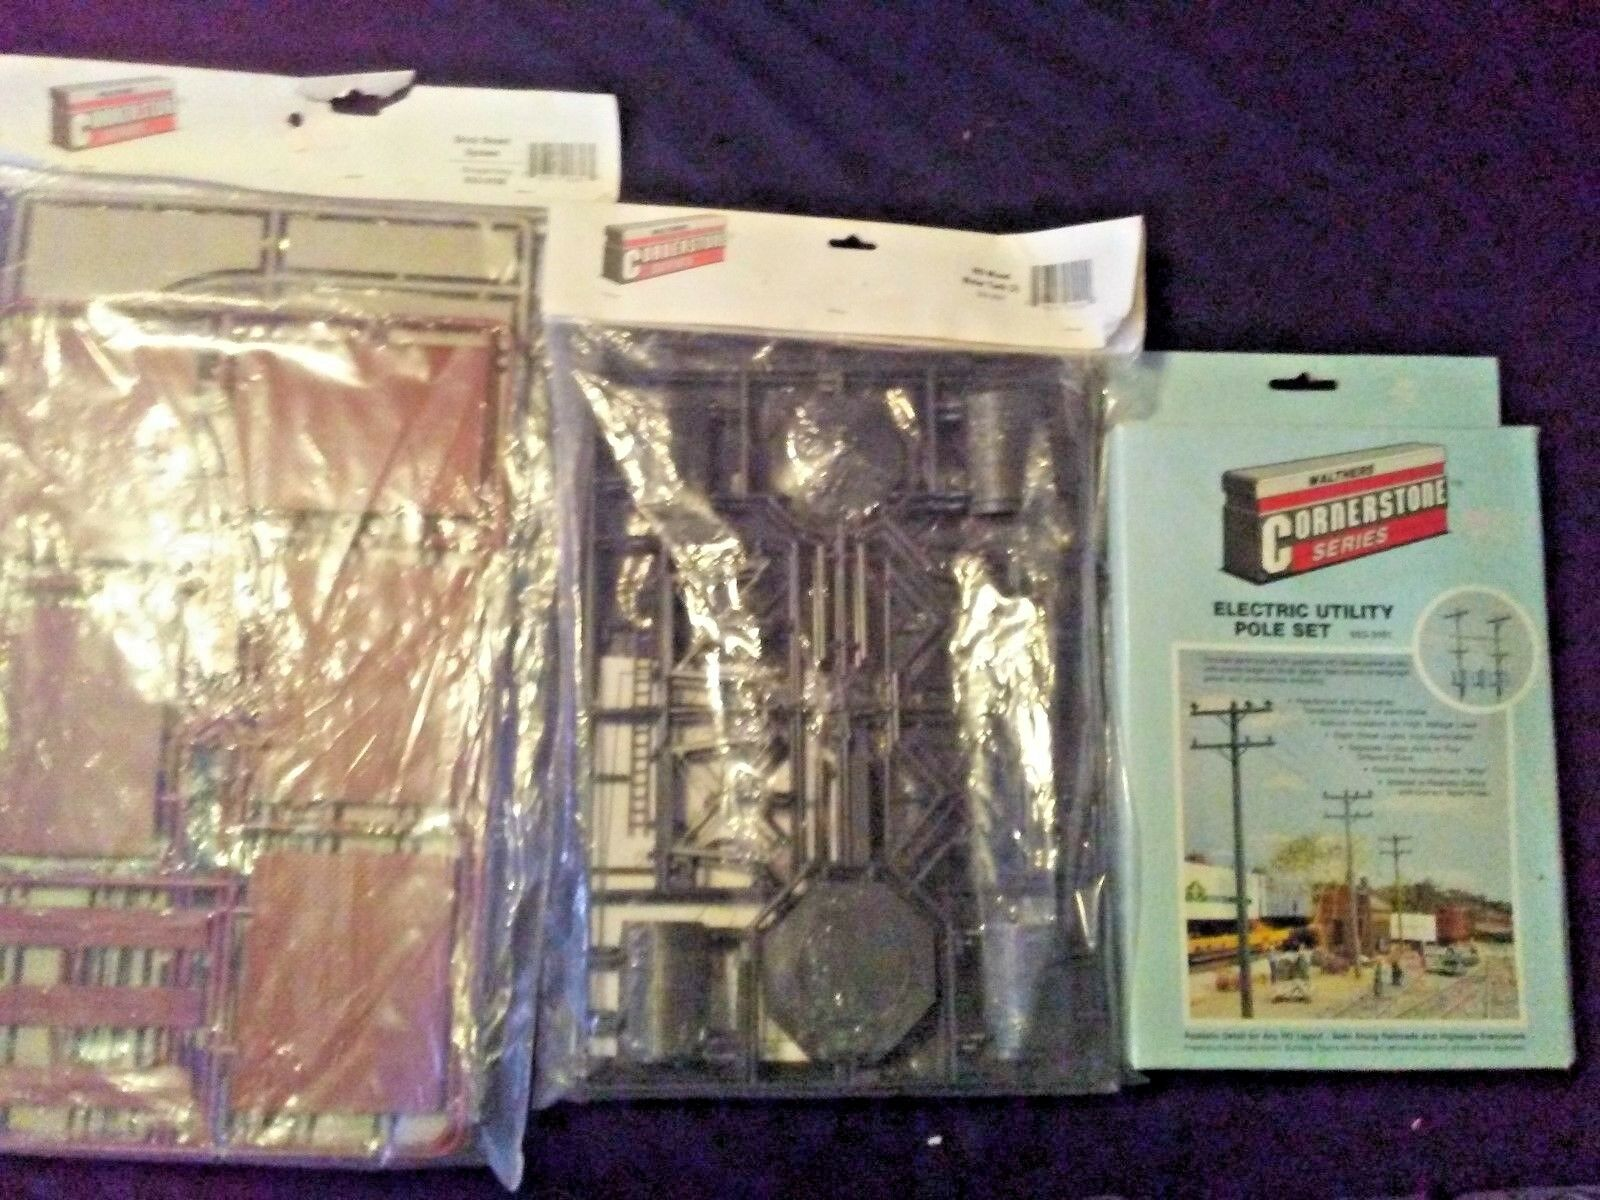 LOT of 3 Walthers Cornerstone  HO Scale  933-3156, 933-3507, 933-3101 New Sealed